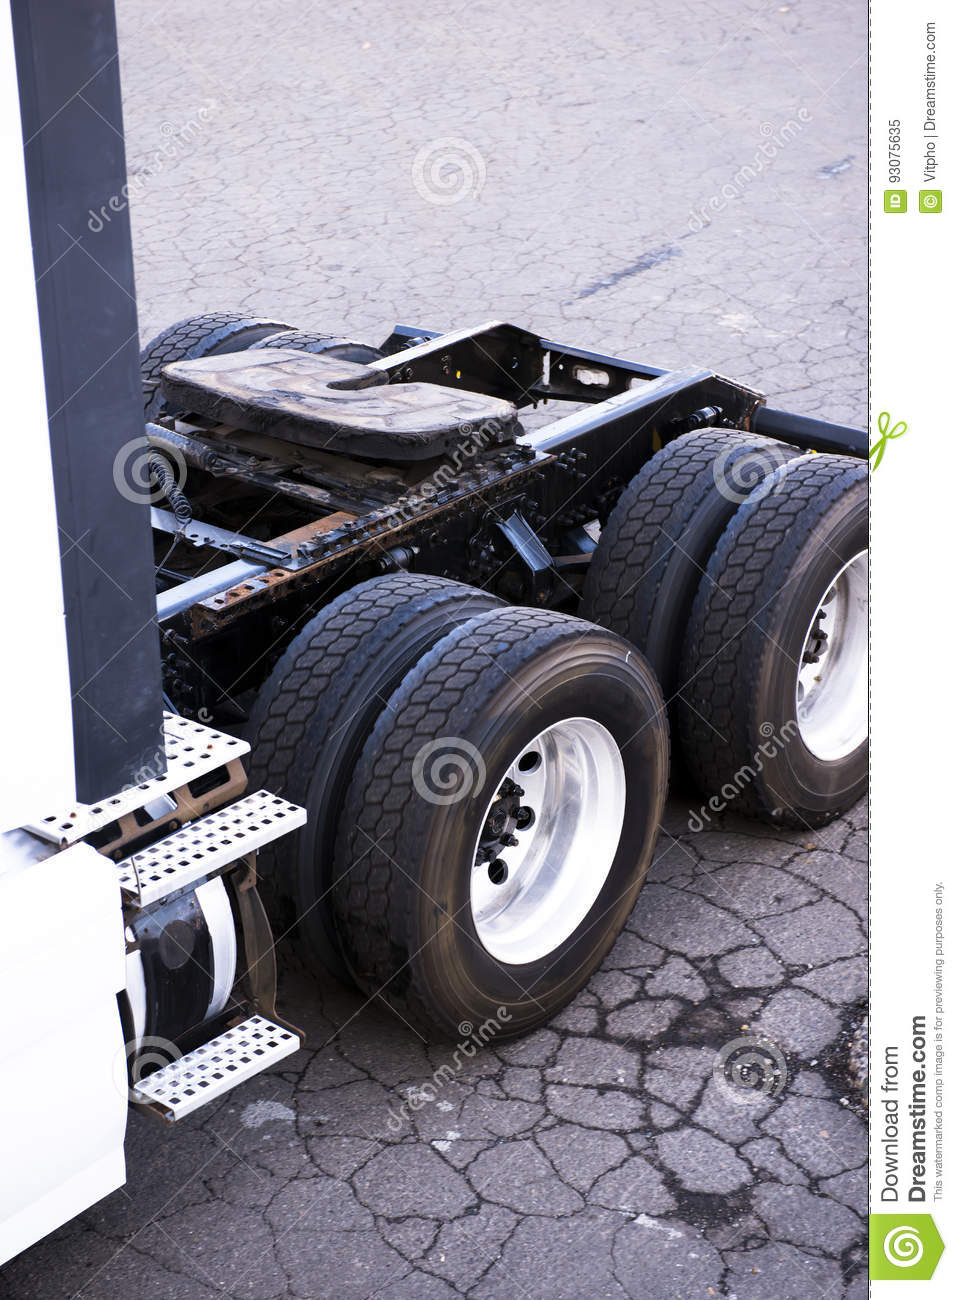 Axles fifth wheel frame and wheels of large semi truck